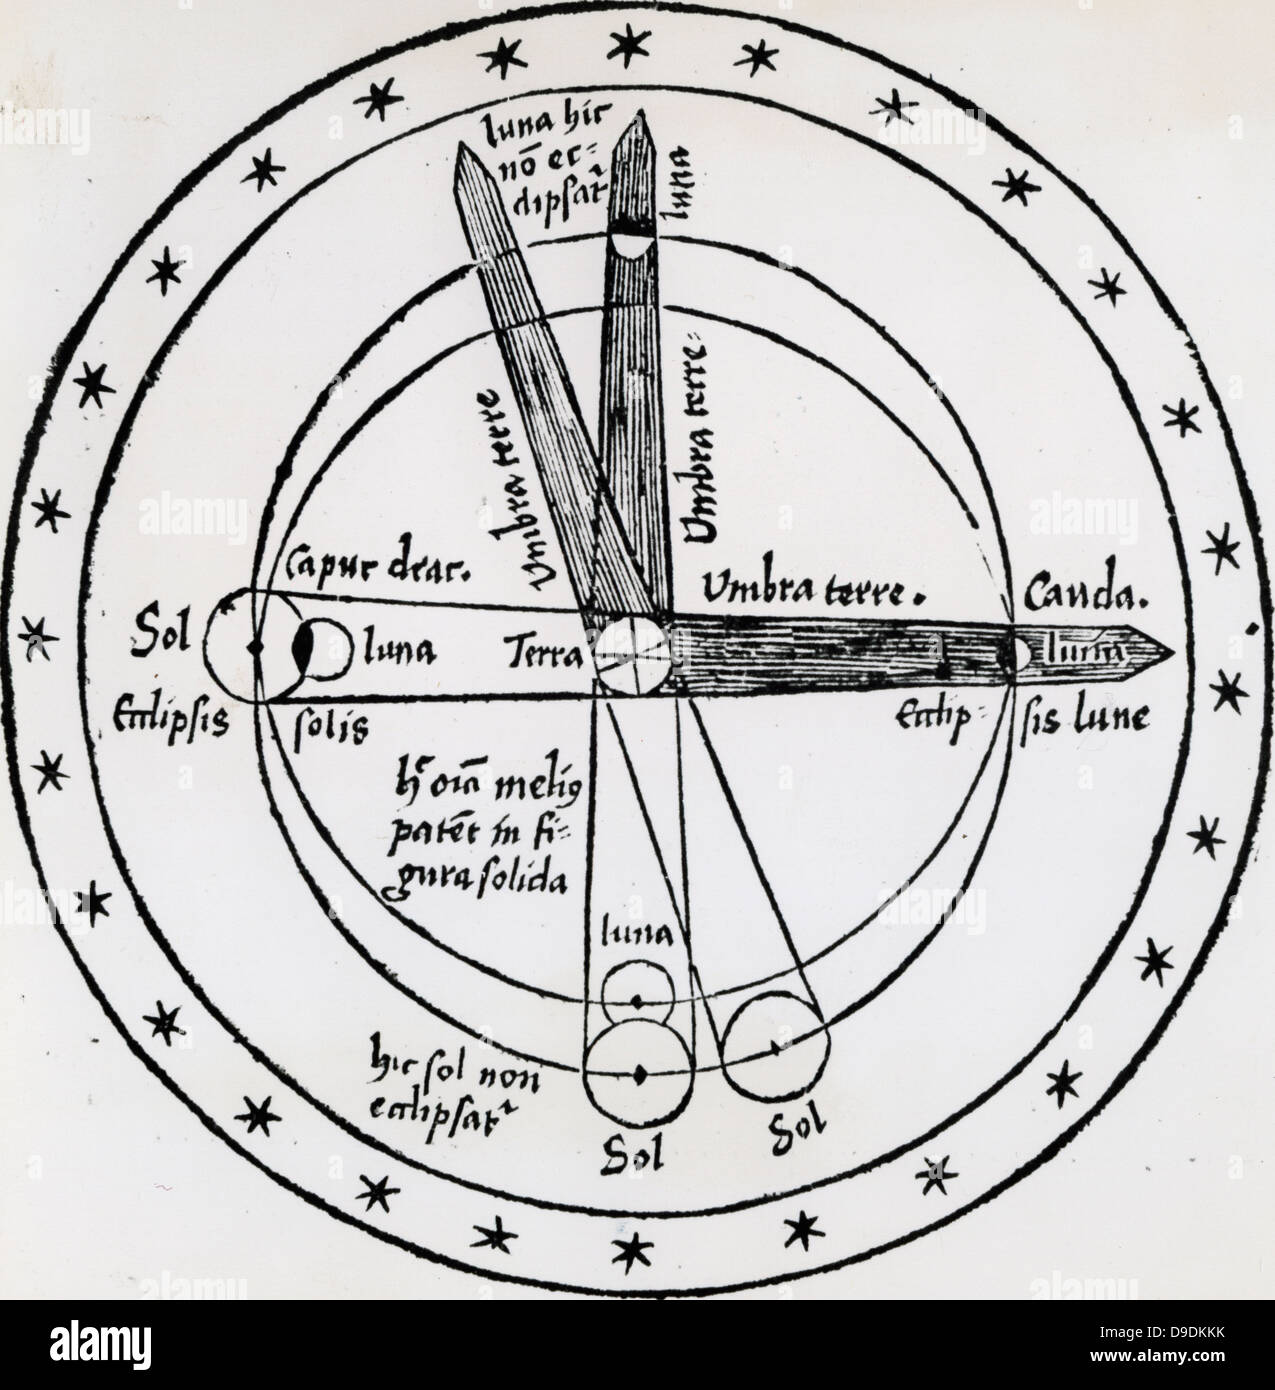 hight resolution of diagram of lunar eclipse showing how the moon is only eclipsed when it moves into the earth s shadow woodcut 1508